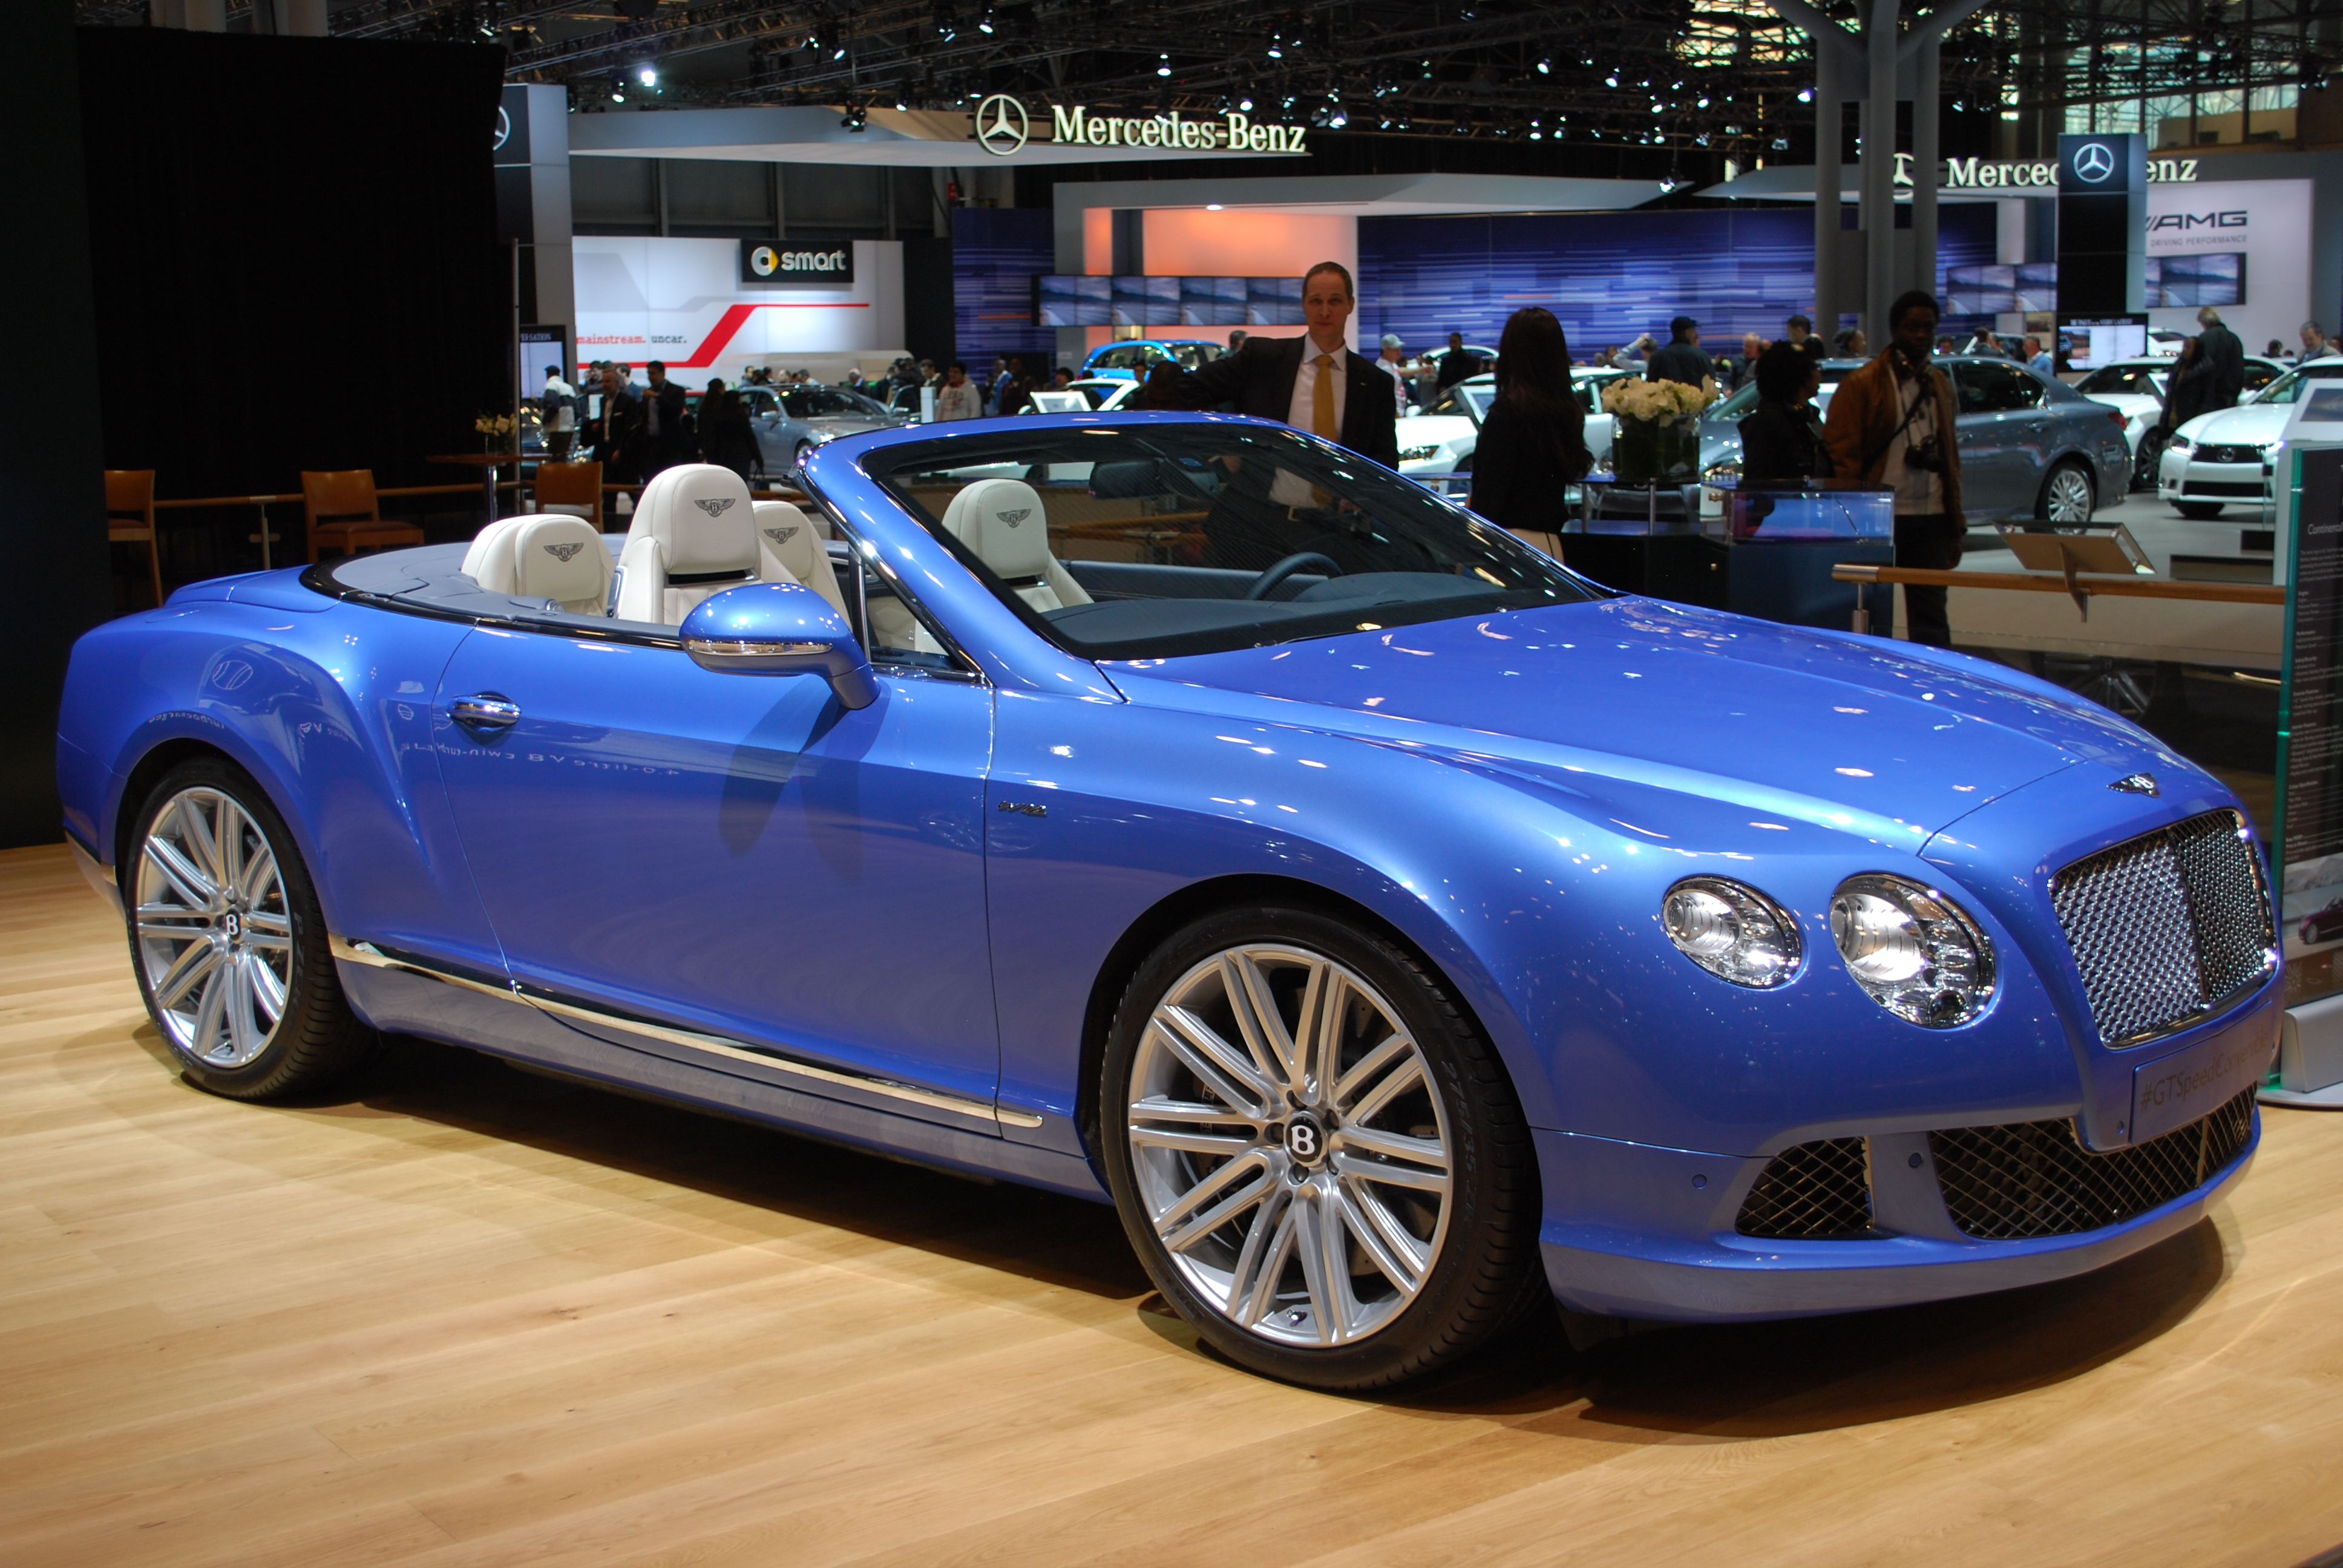 2014 bentley continental gt speed convertible ii by hardrocker78 on. Cars Review. Best American Auto & Cars Review